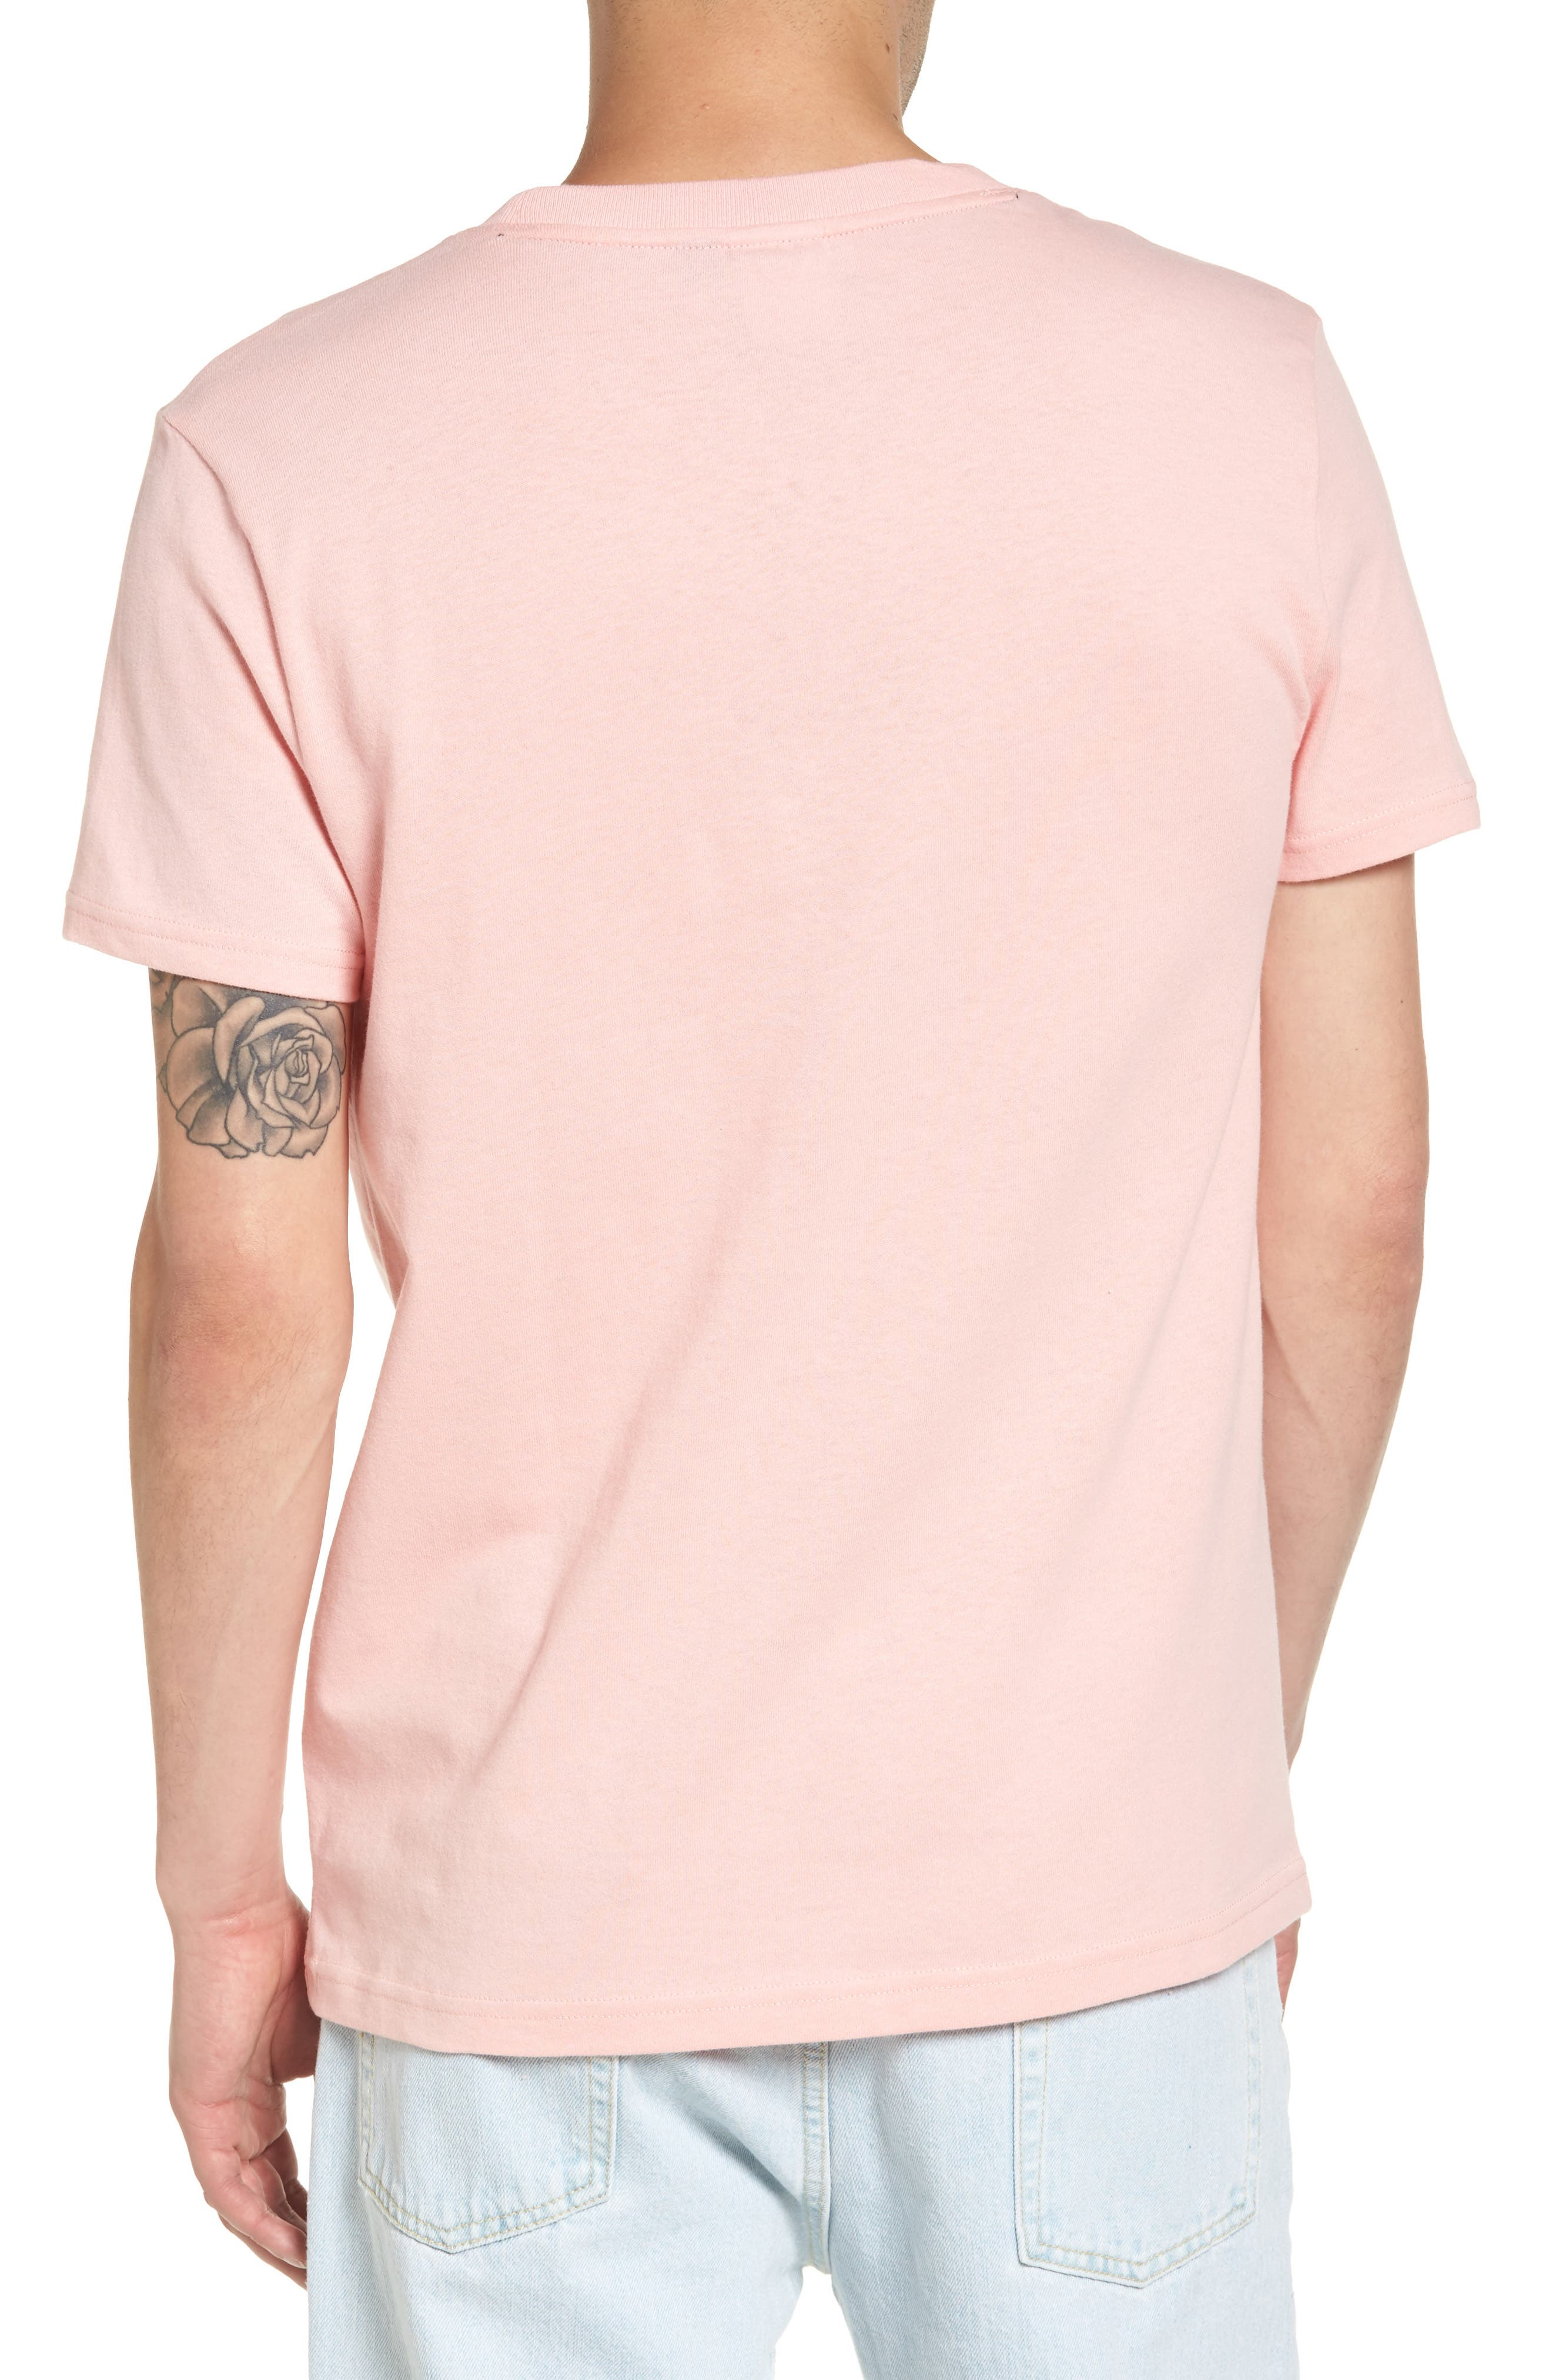 '90s Flat T-Shirt,                             Alternate thumbnail 2, color,                             Quartz Pink